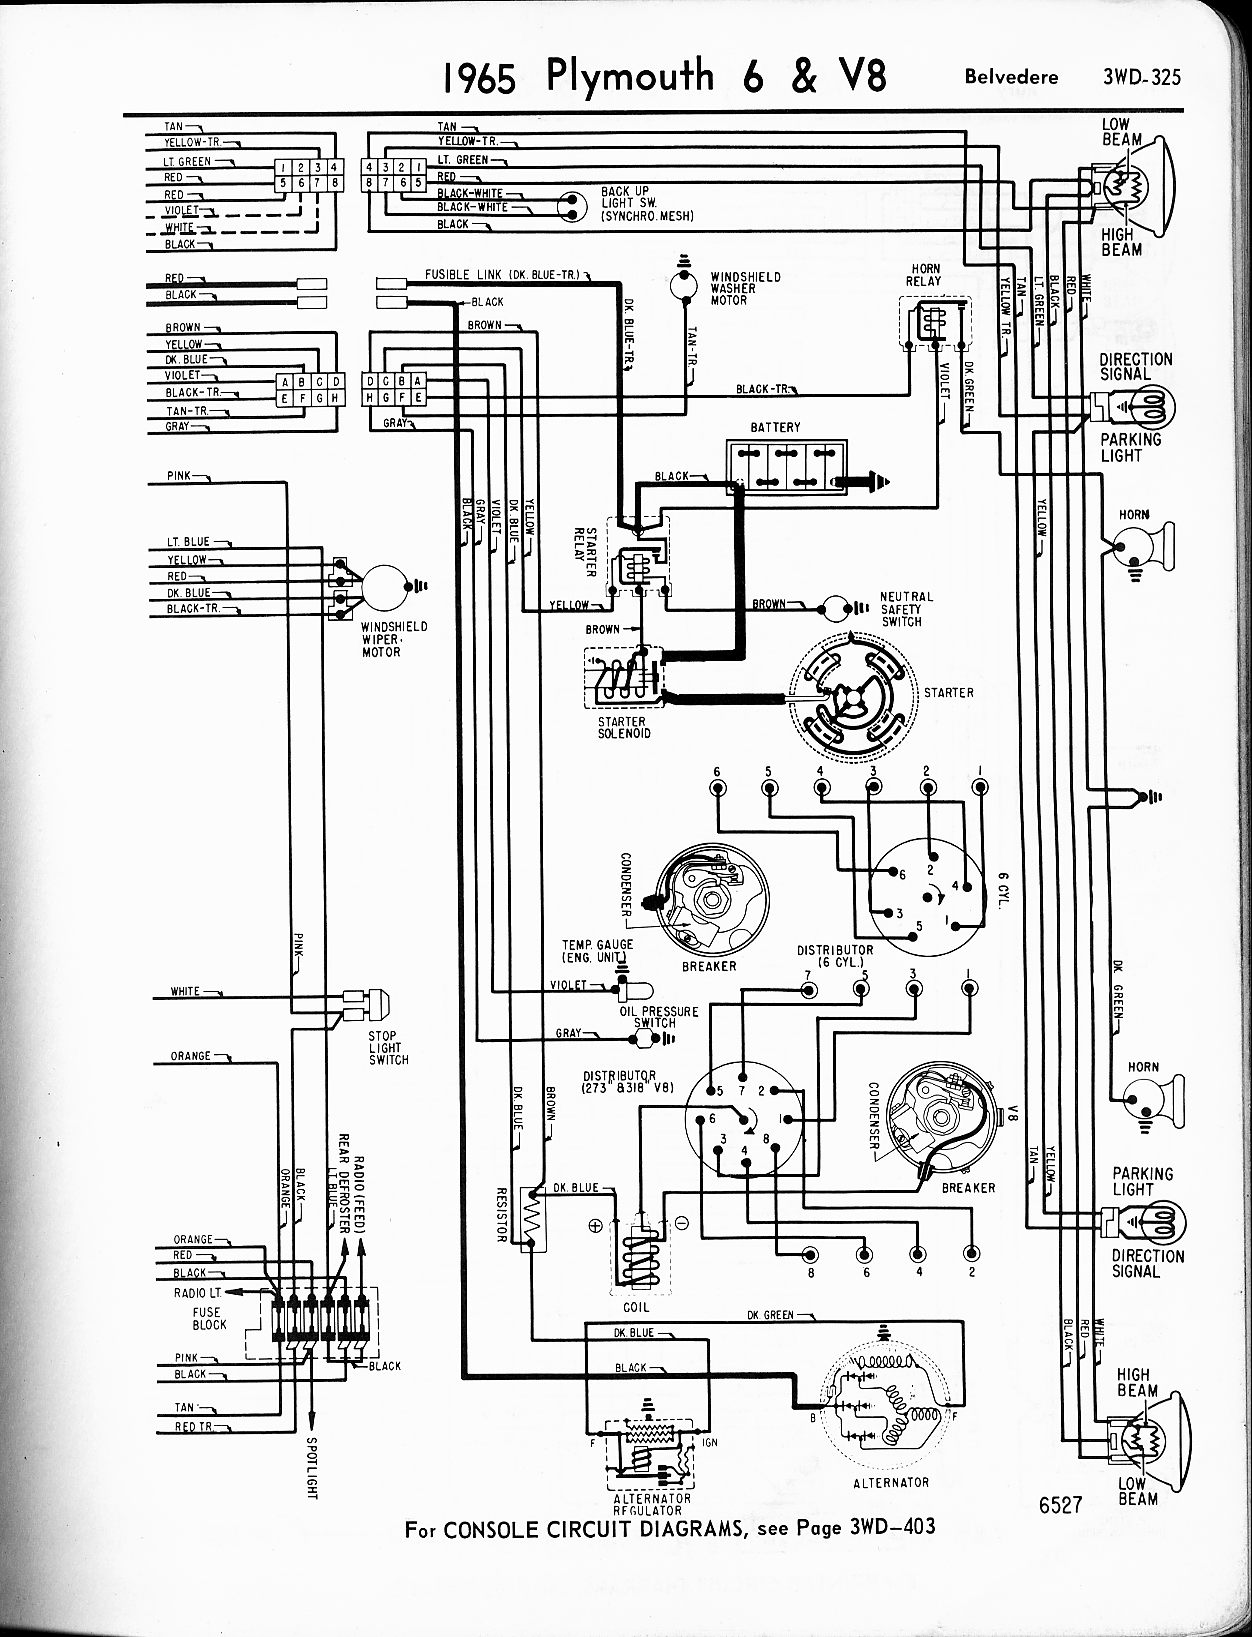 MWire5765 325 1956 1965 plymouth wiring the old car manual project 1975 plymouth duster wiring diagram at edmiracle.co